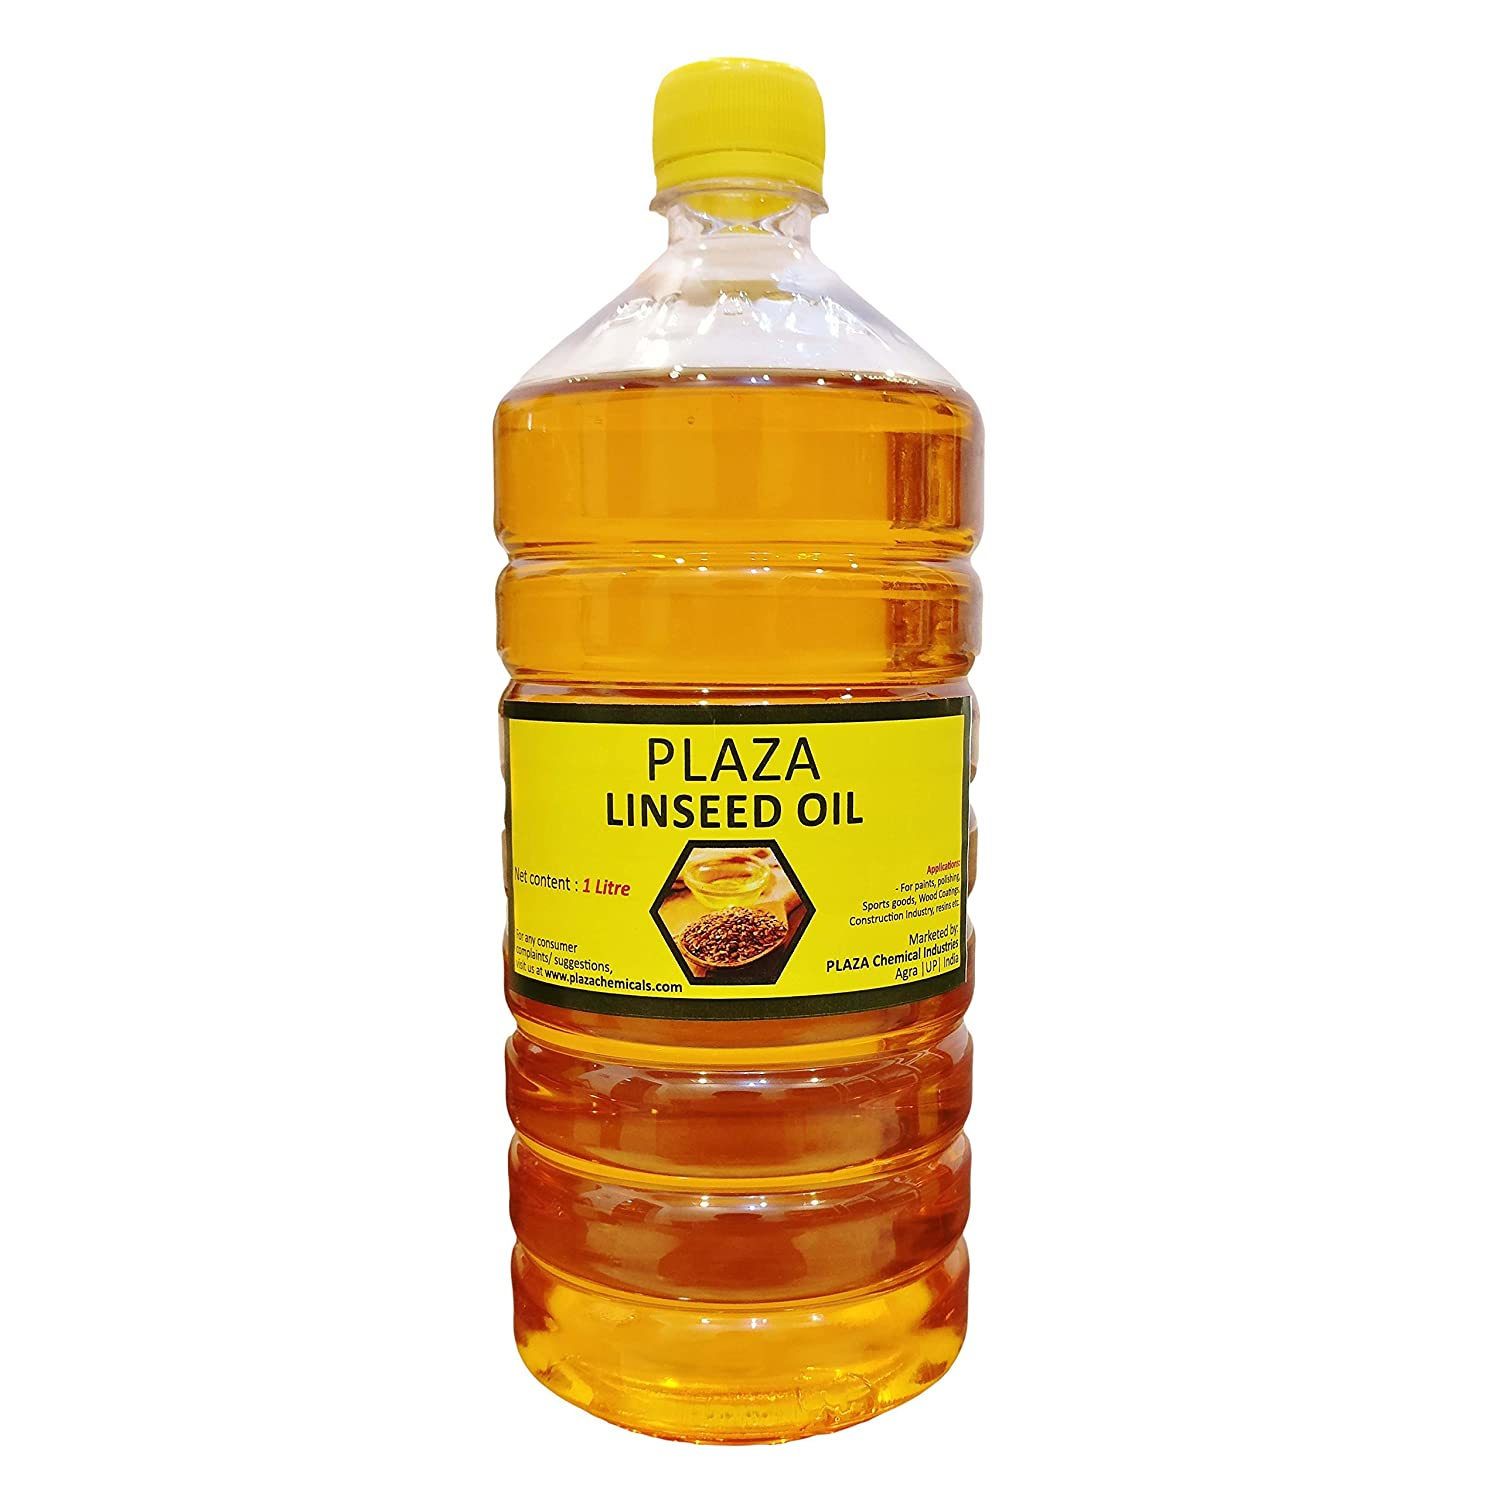 Linseed Oil Pure - 1 Litre Pack by PLAZA (Bat Oil) Used for Wood Polishing and Wood Strength, Used for Cricket Bats, Used for Mixing in Paints for Enhanced Gloss, Good Massaging Oil. PLAZA Chemical Industries PLAZA-LO-1L